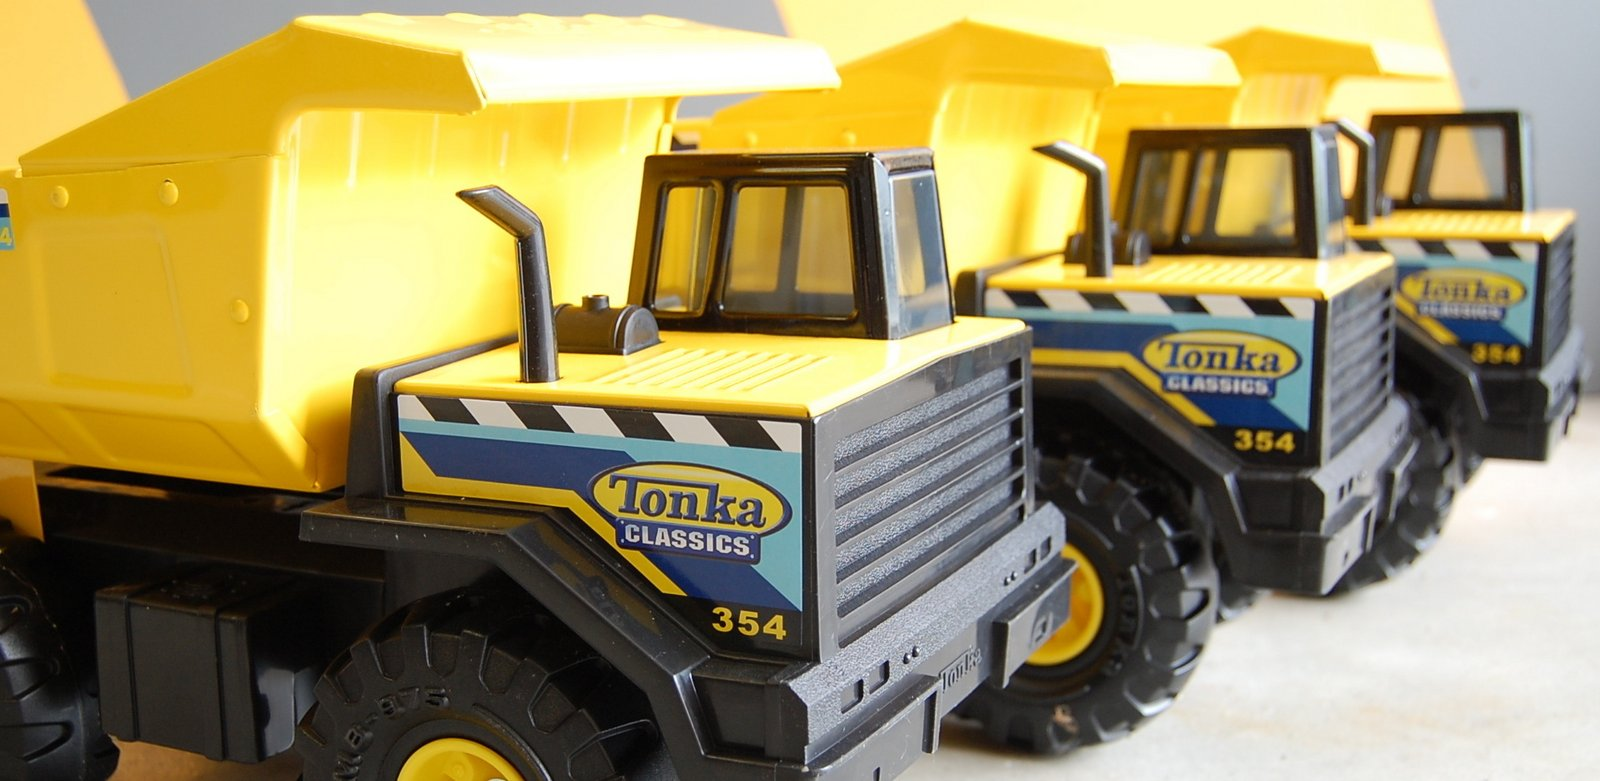 Modding Tonka trucks with Make:projects